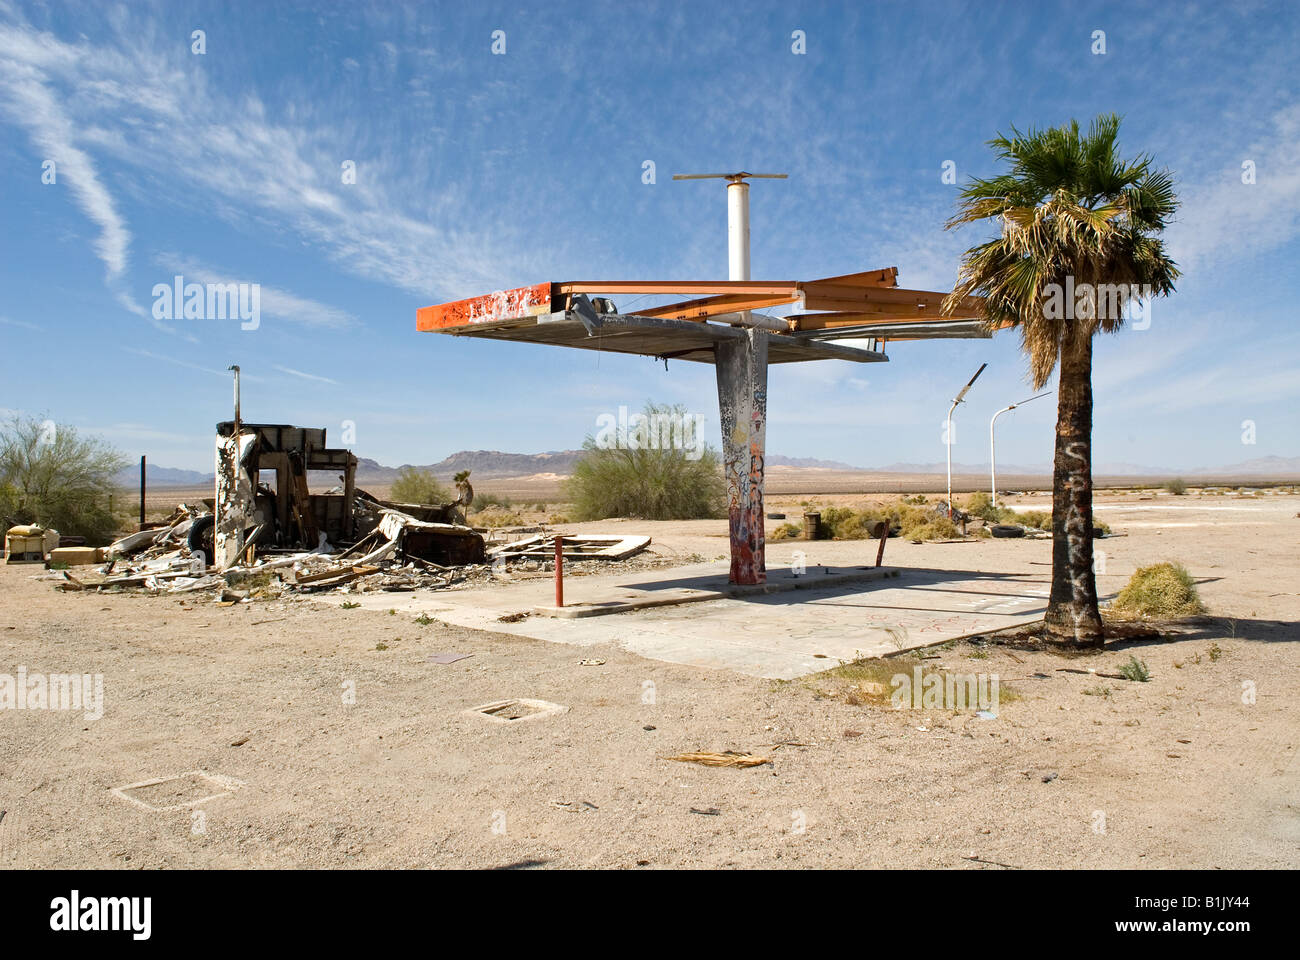 Derelict Gas Station, Mojave Desert near the ghost town of Rice, highway 62, California, USA. - Stock Image